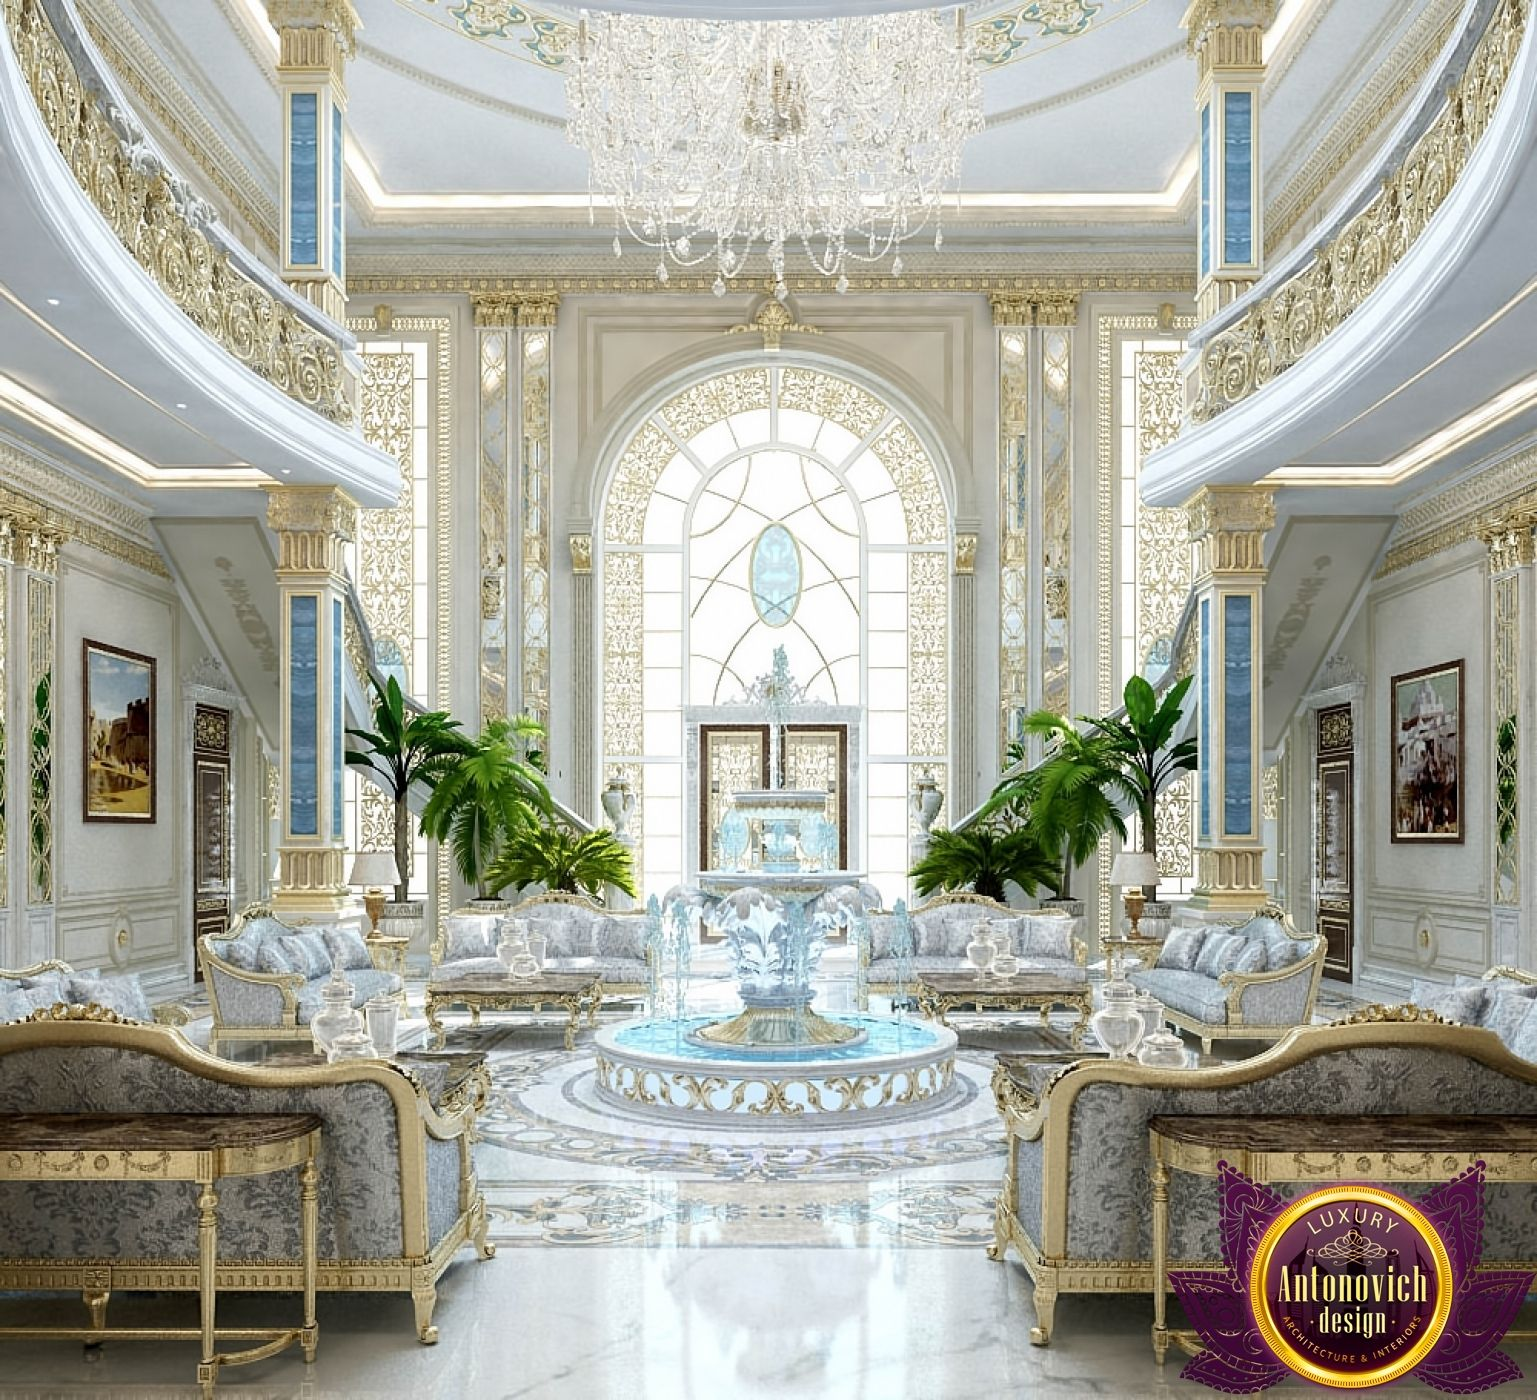 New Home Designs Latest Luxury Living Rooms Interior: Entrance Design In Dubai, Luxury Royal Main Entrance